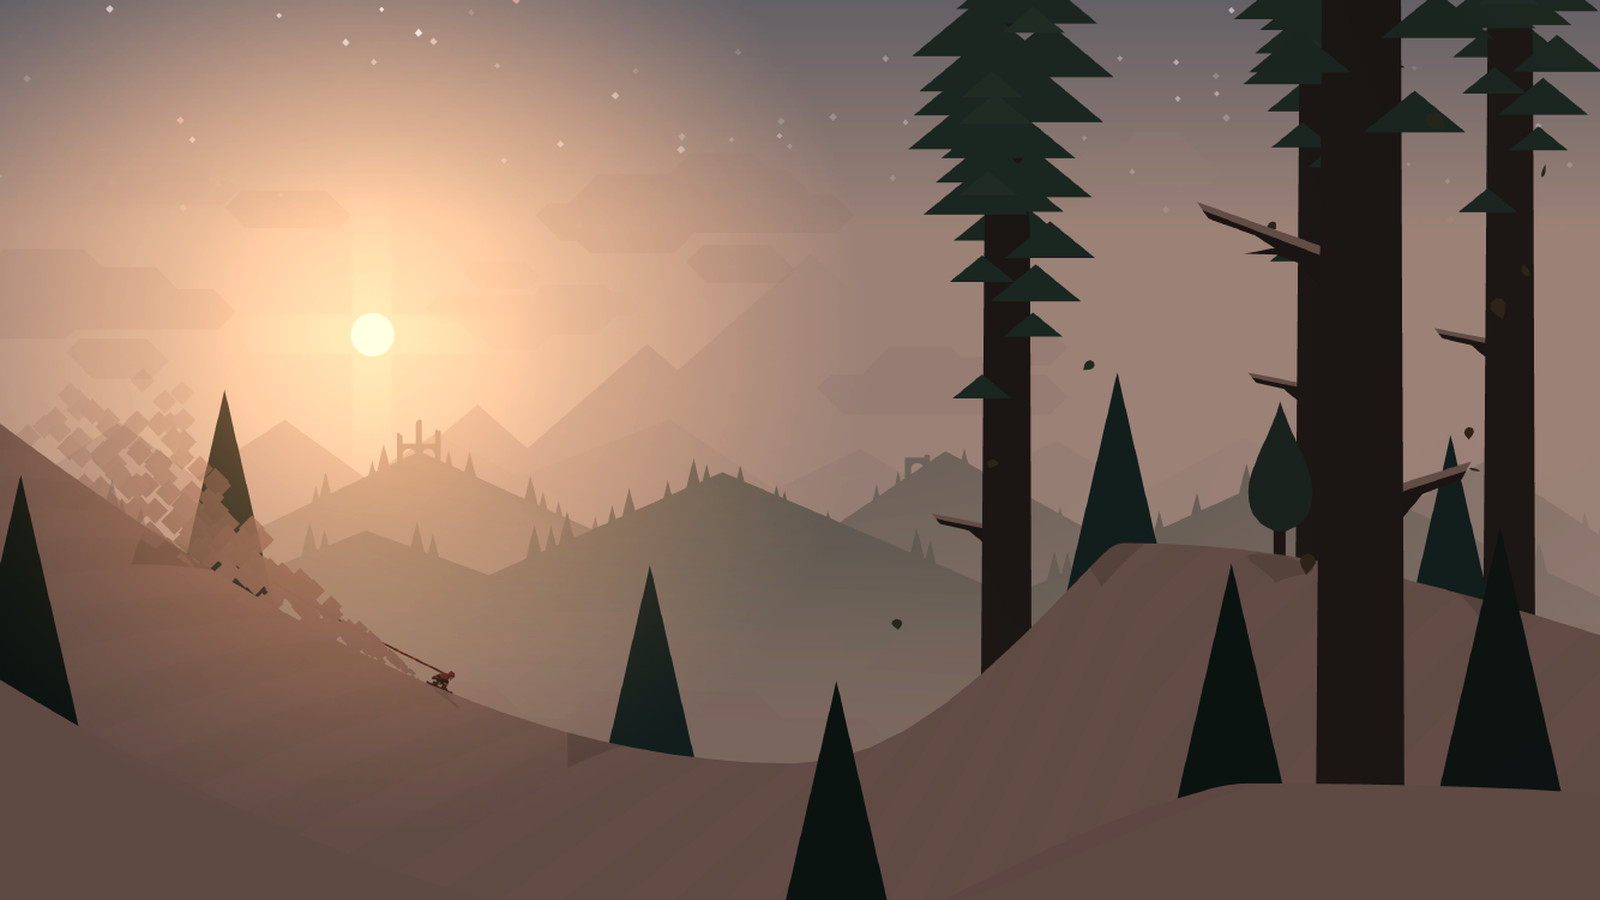 Iphone Ios 7 Animated Wallpaper Get Ready To Feel Some Snowboarding Emotions With Alto S